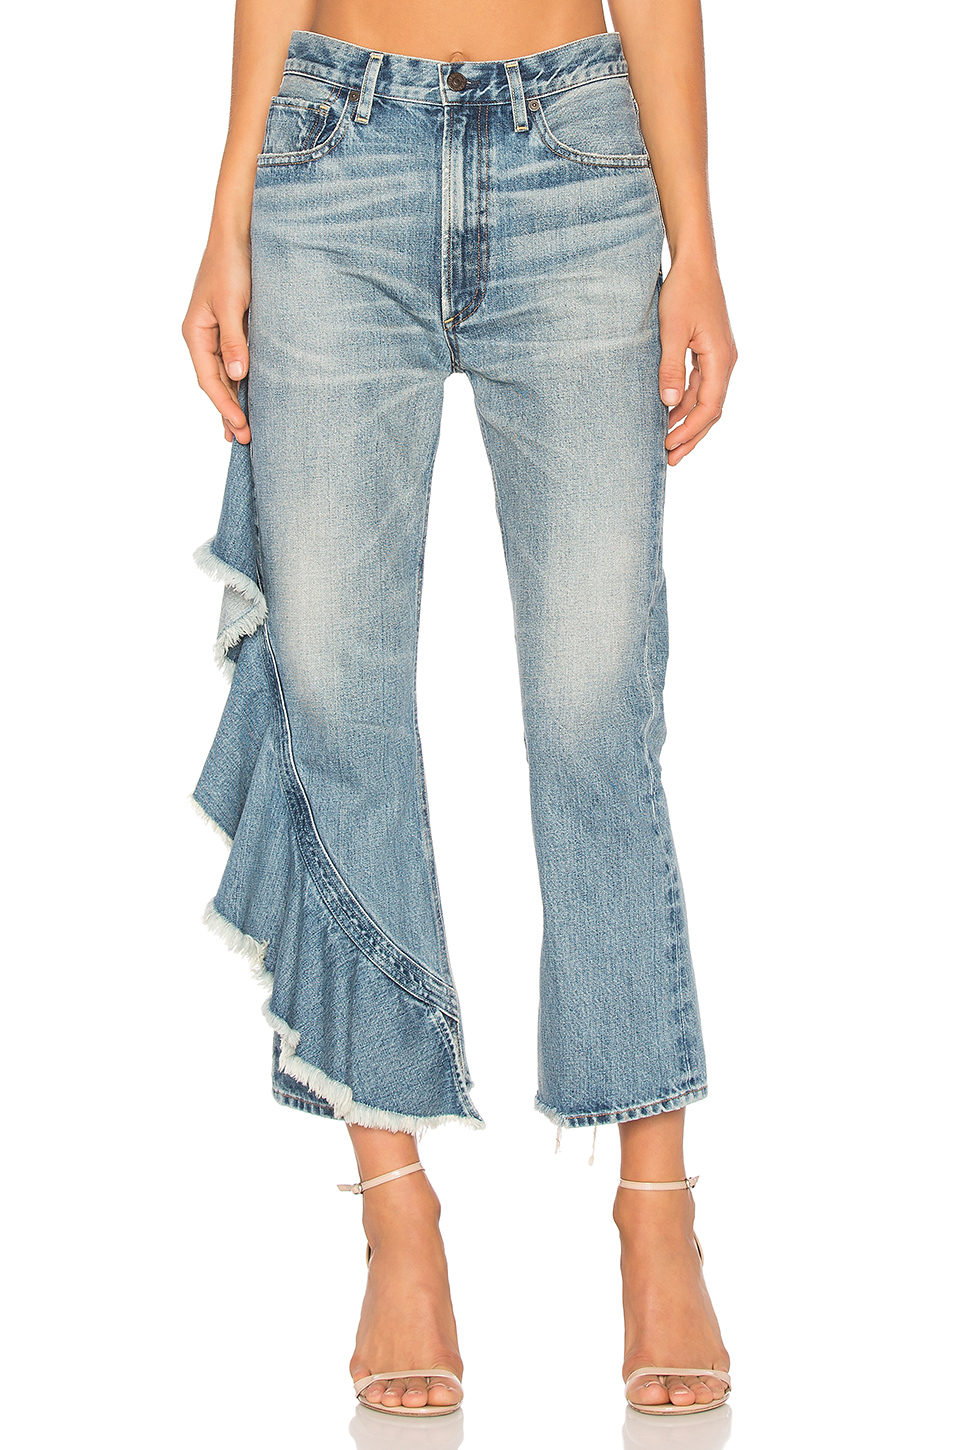 1.	CITIZENS OF HUMANITY 'ESTELLA' SIDE RUFFLE JEANS